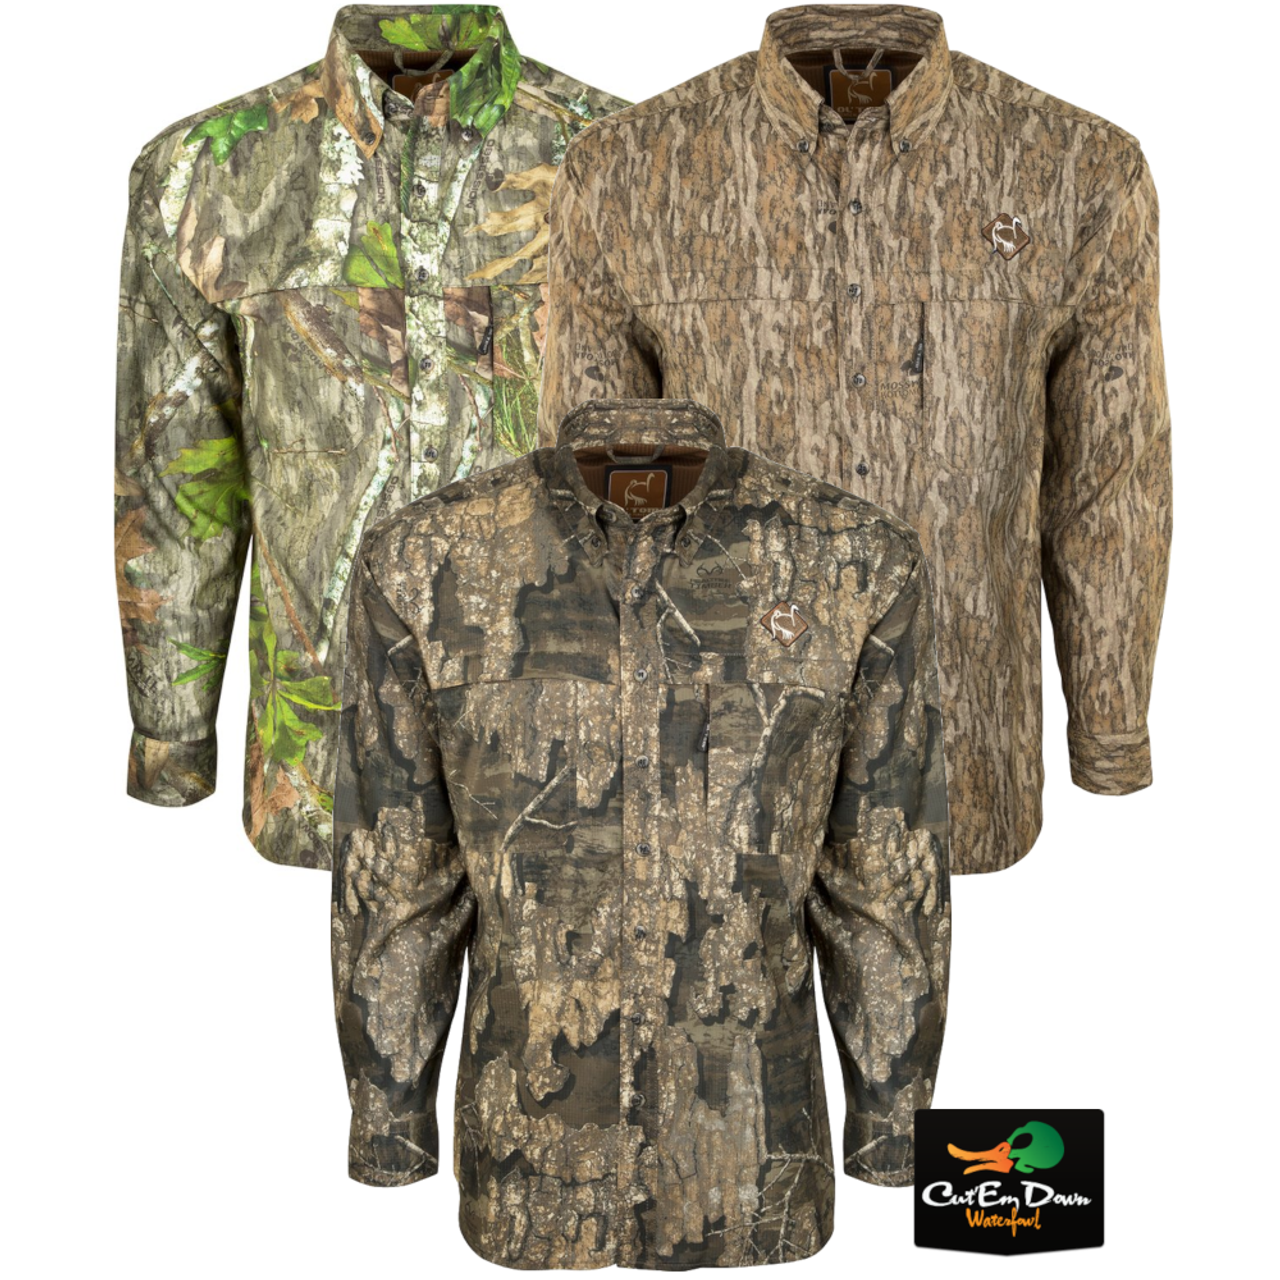 Details about DRAKE WATERFOWL OL TOM MESH BACK FLYWEIGHT CAMO SHIRT WITH  SPINE PAD